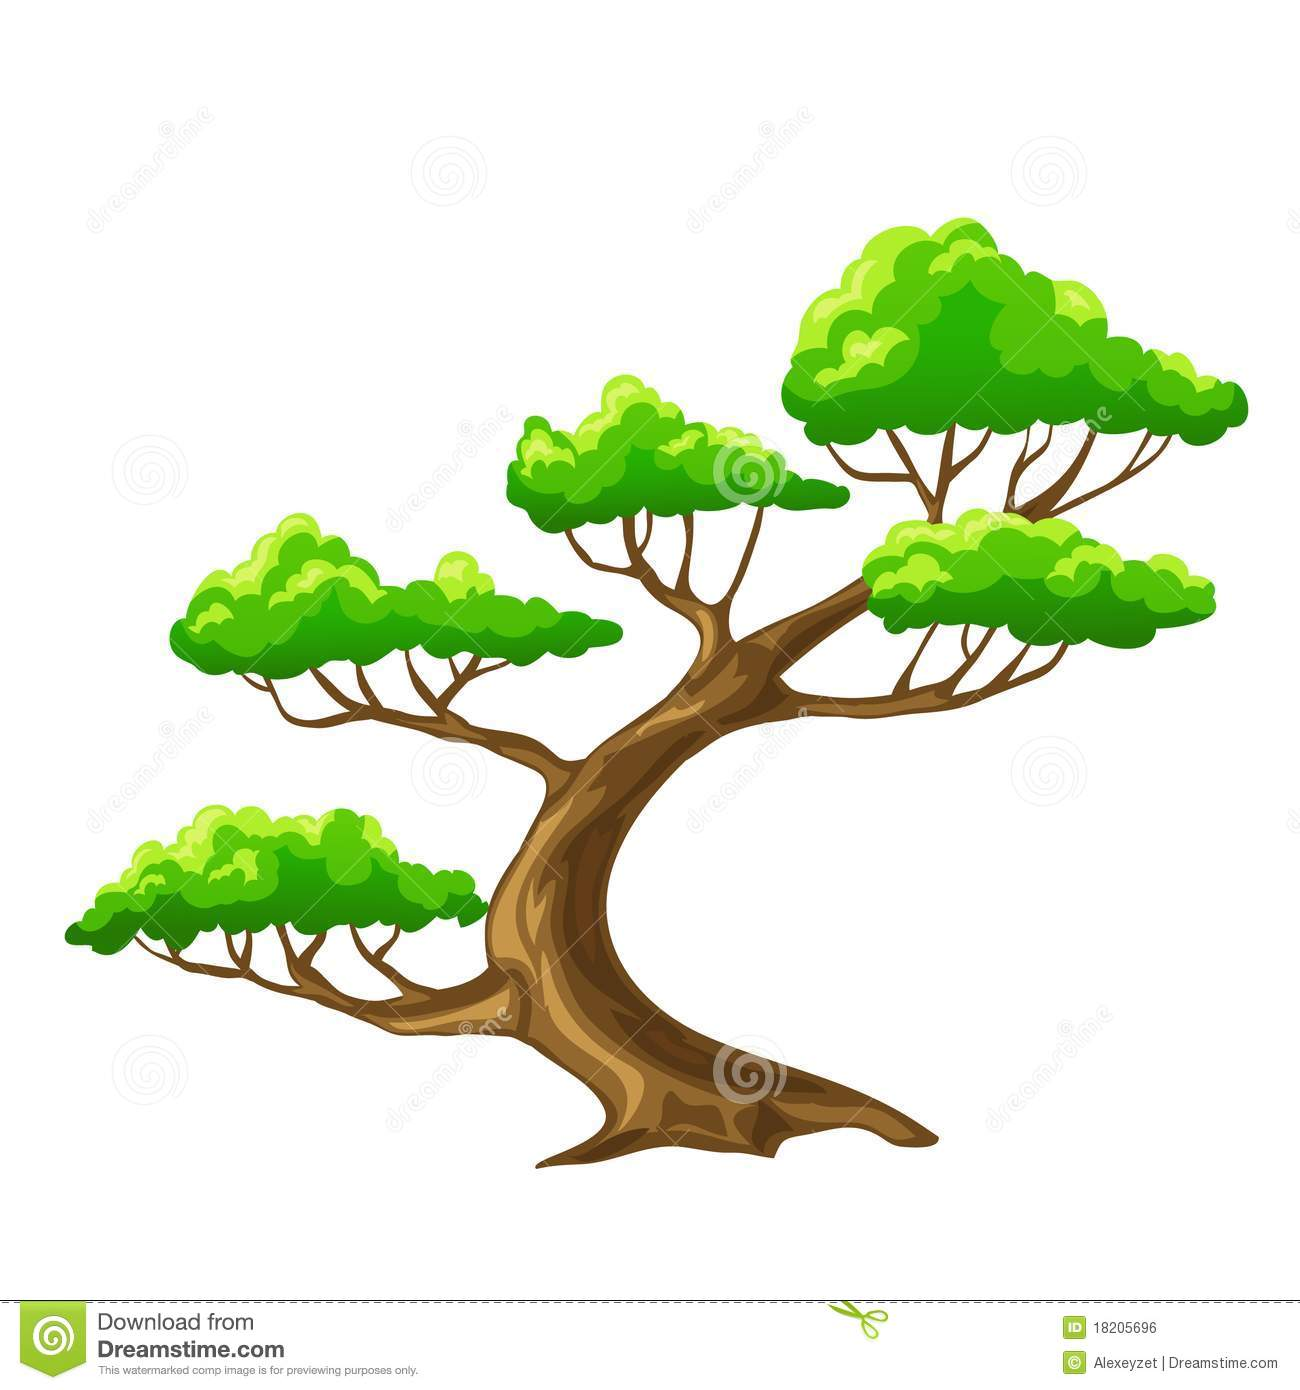 Cartoon Tree Bansai With White Background Stock Vector Illustration Of Trunk Branches 18205696 Cartoon tree branch with leaves 1. dreamstime com